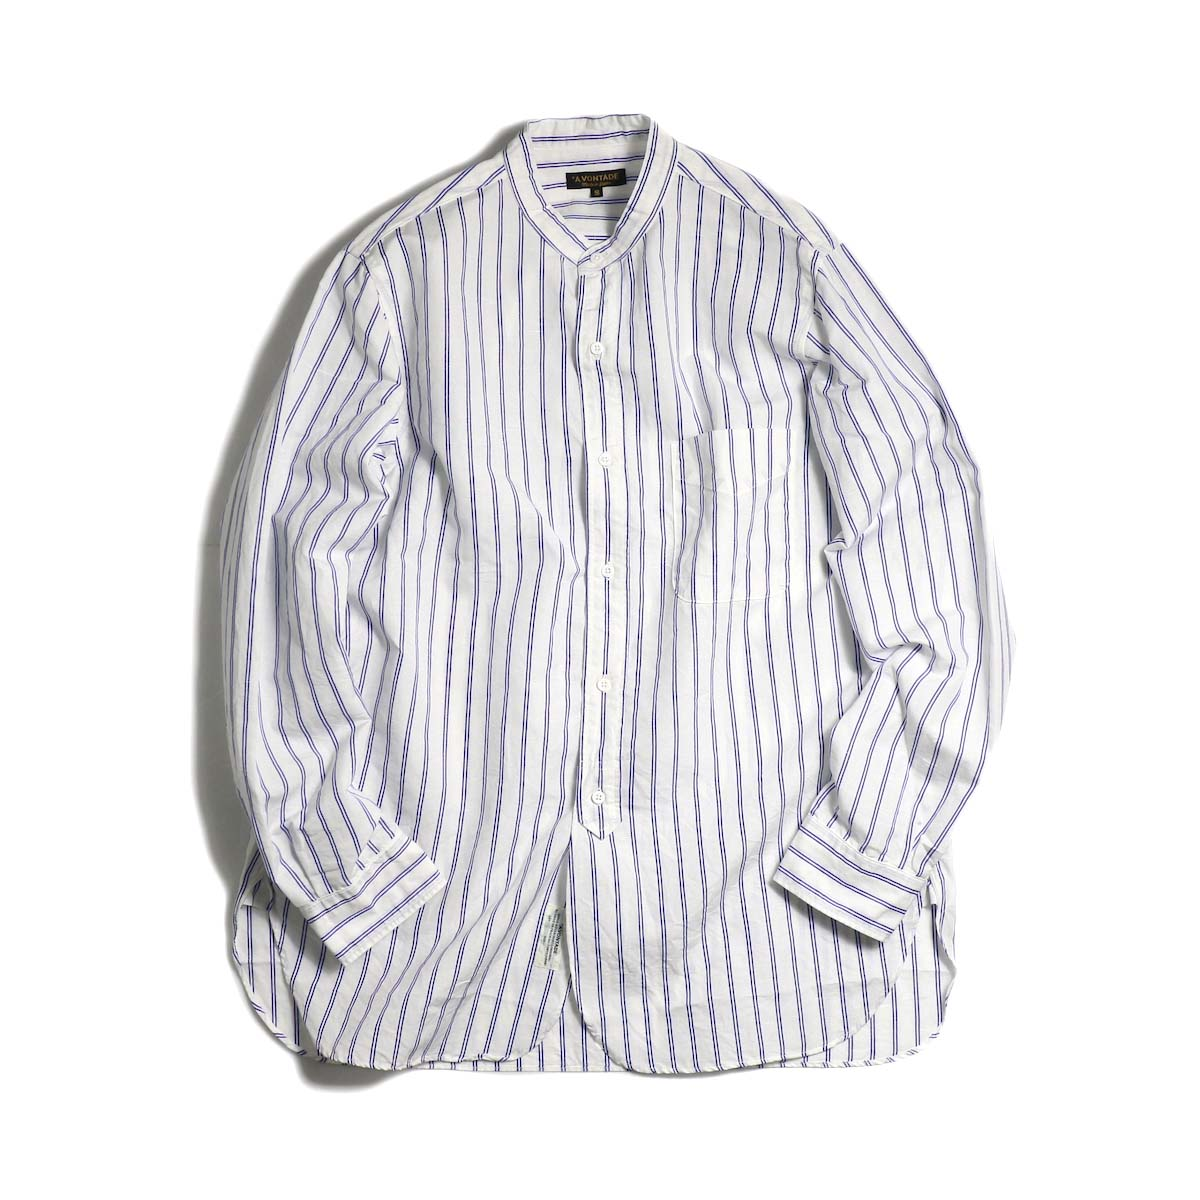 A VONTADE / Banded Collar Shirts -Blue Stripe 正面